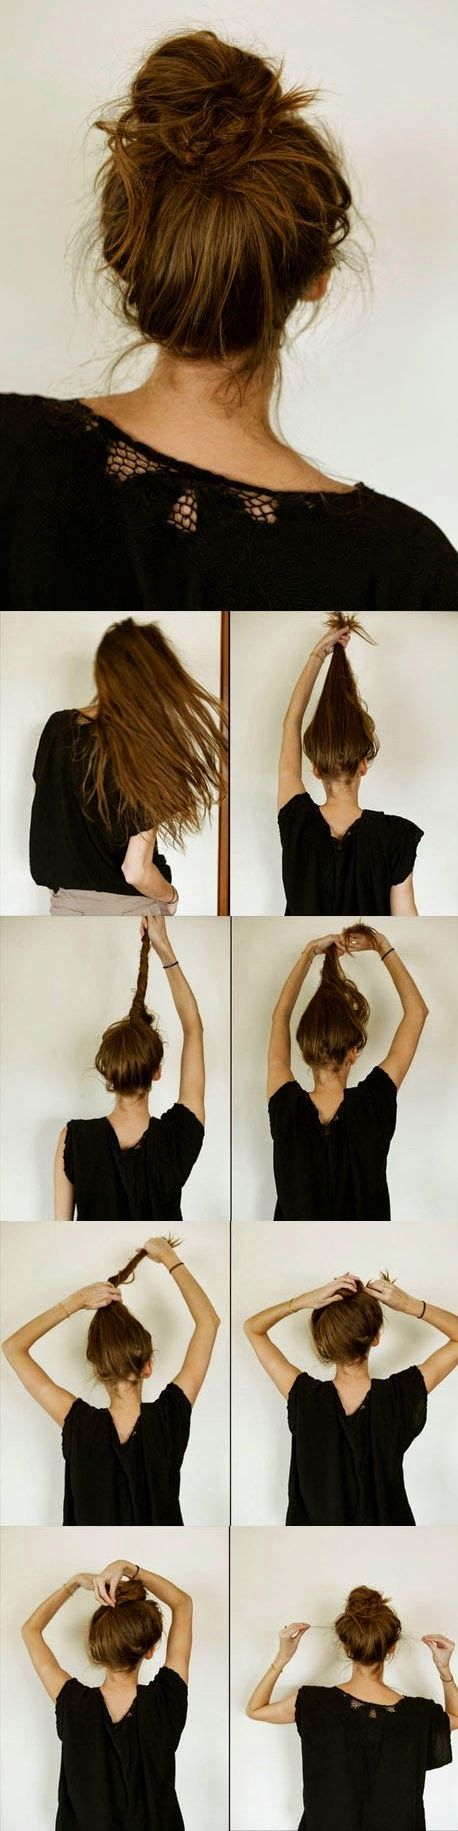 Super Easy Knotted Bun Updo 2014